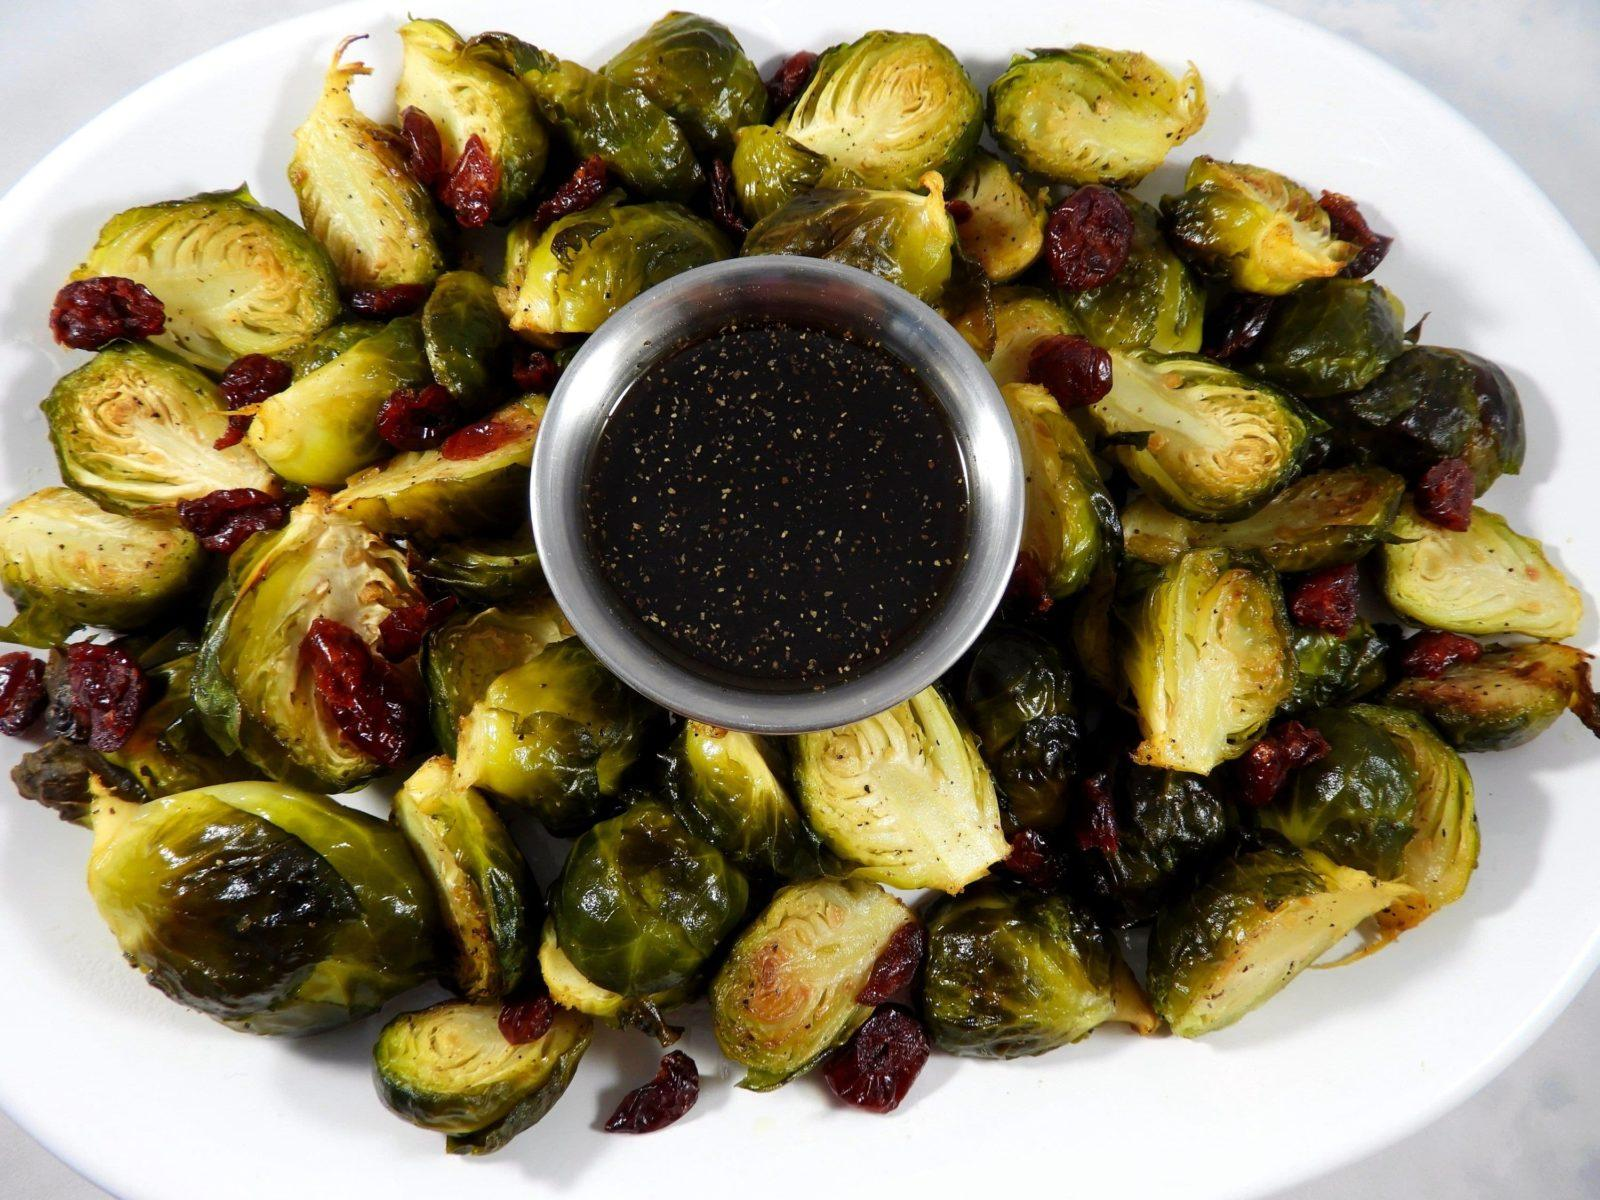 balsamic-coconut-vinegar-roasted-brussel-sprouts